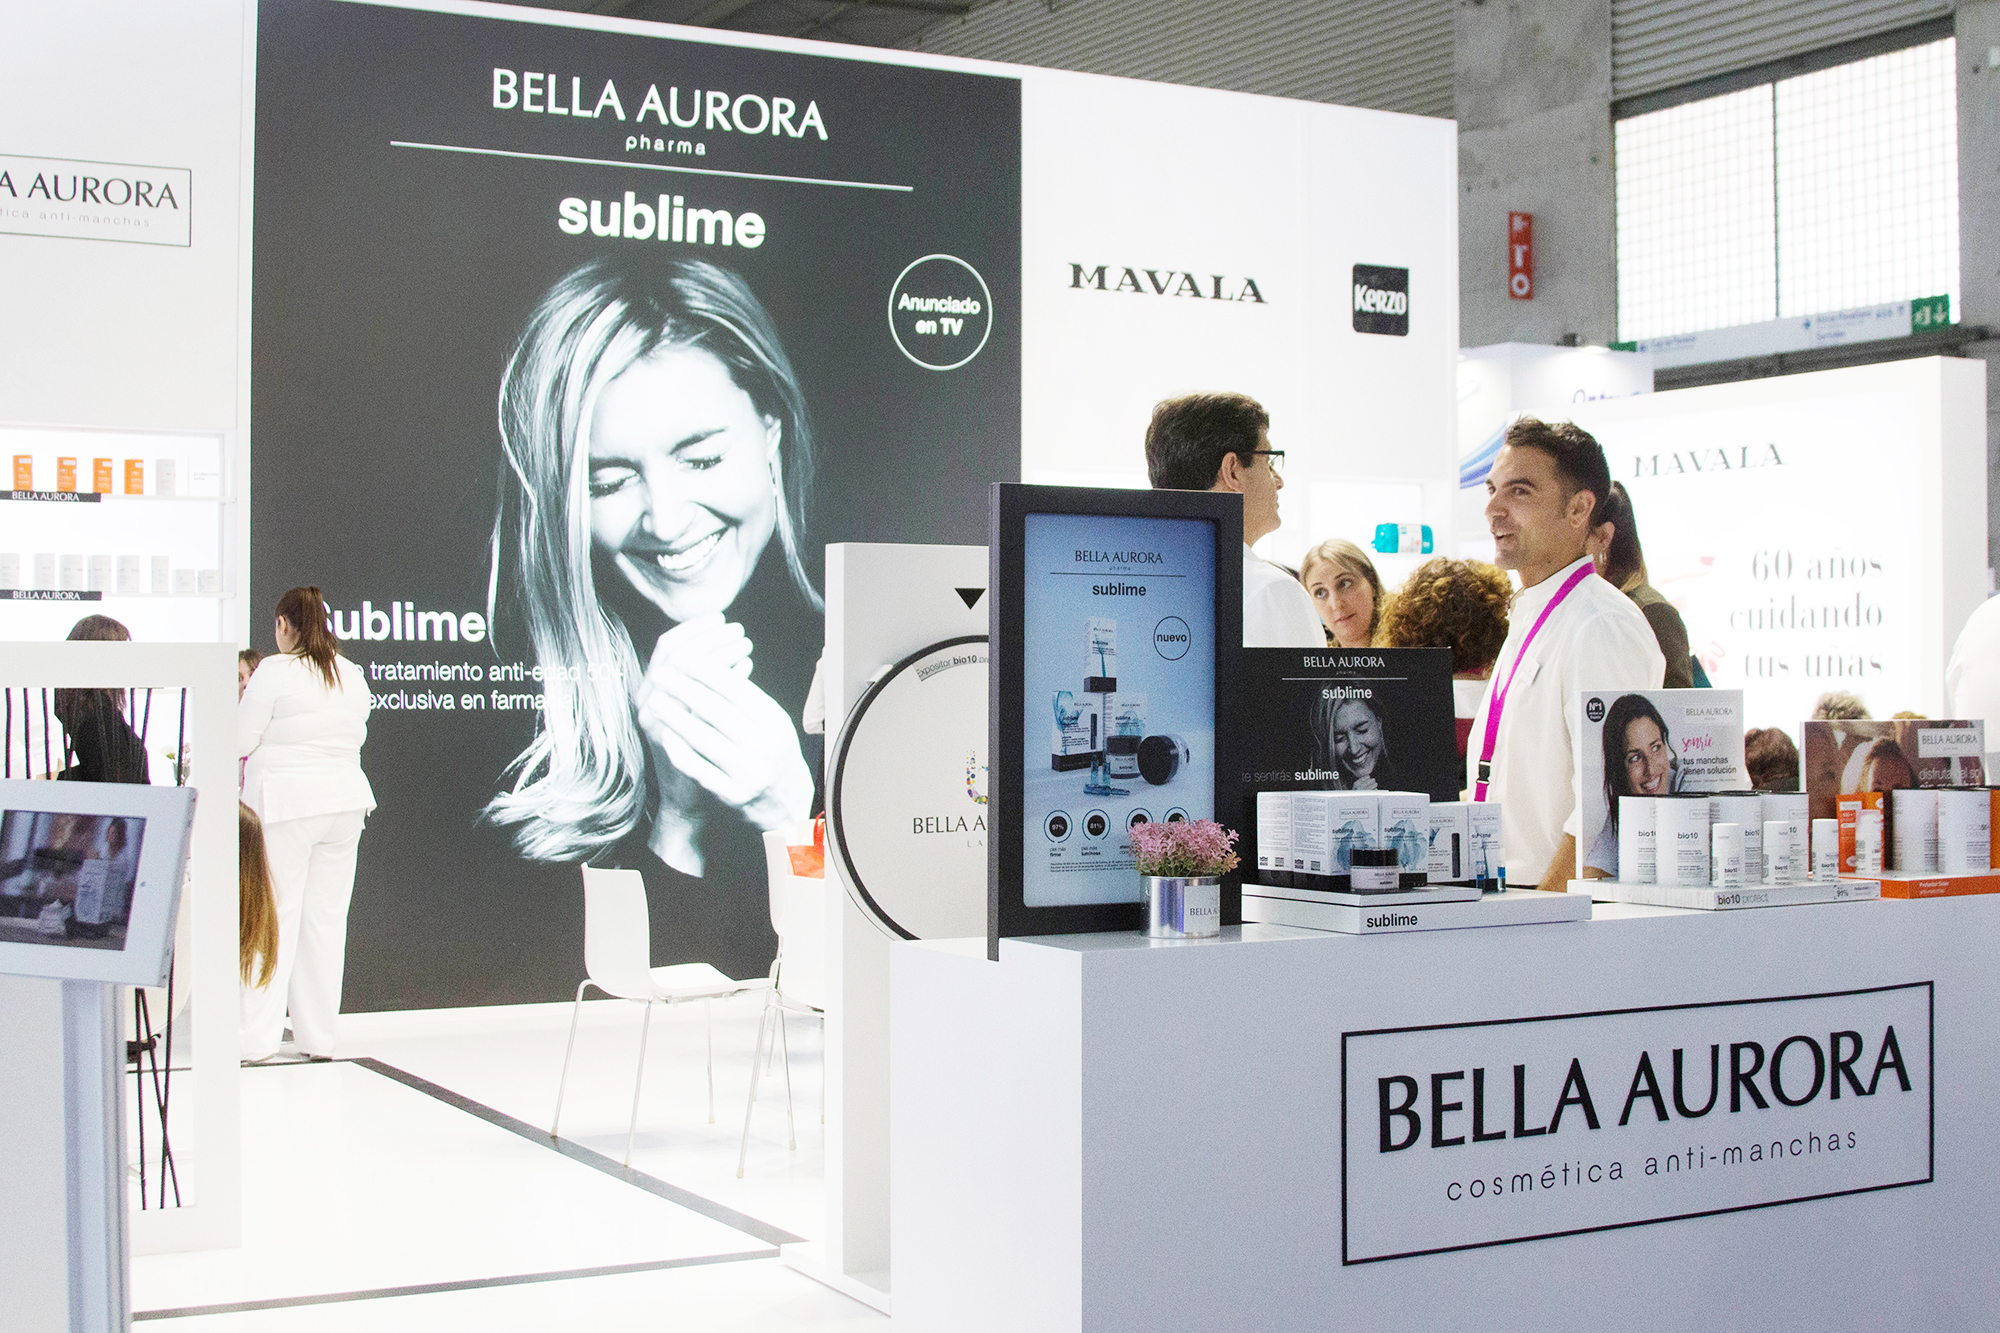 Bella Aurora makes a splash at Infarma 2019